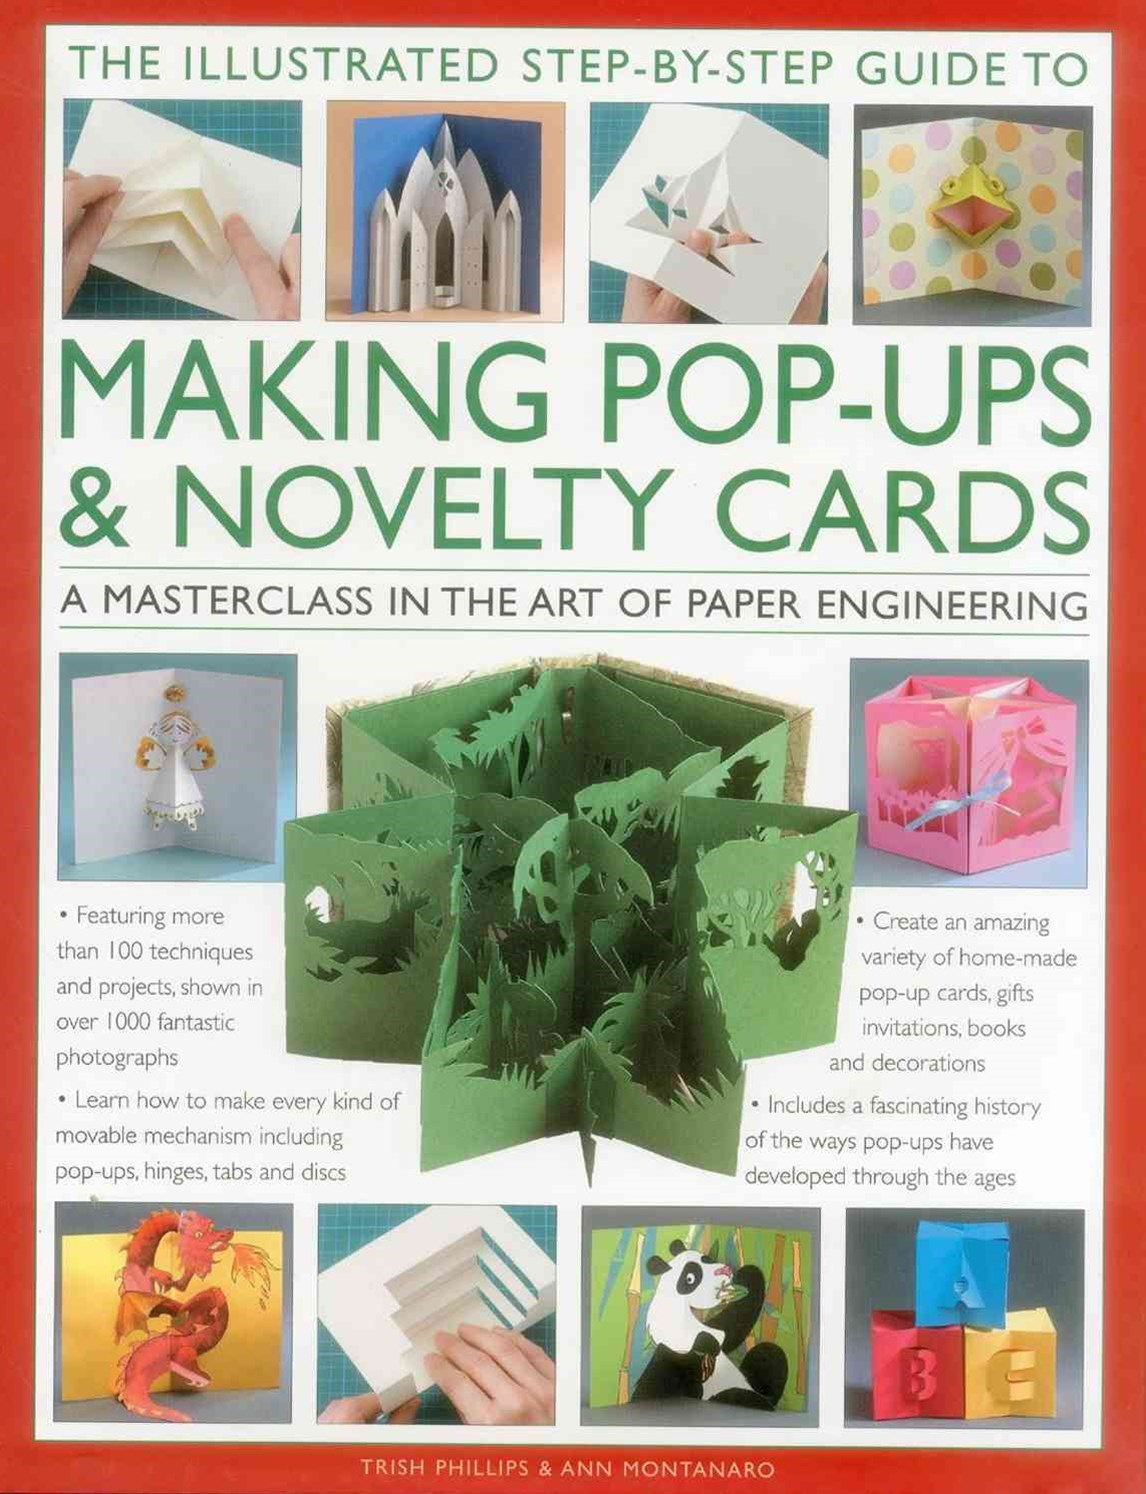 'The Illustrated Step-by-Step Guide to Making Pop-Ups and Novelty Cards